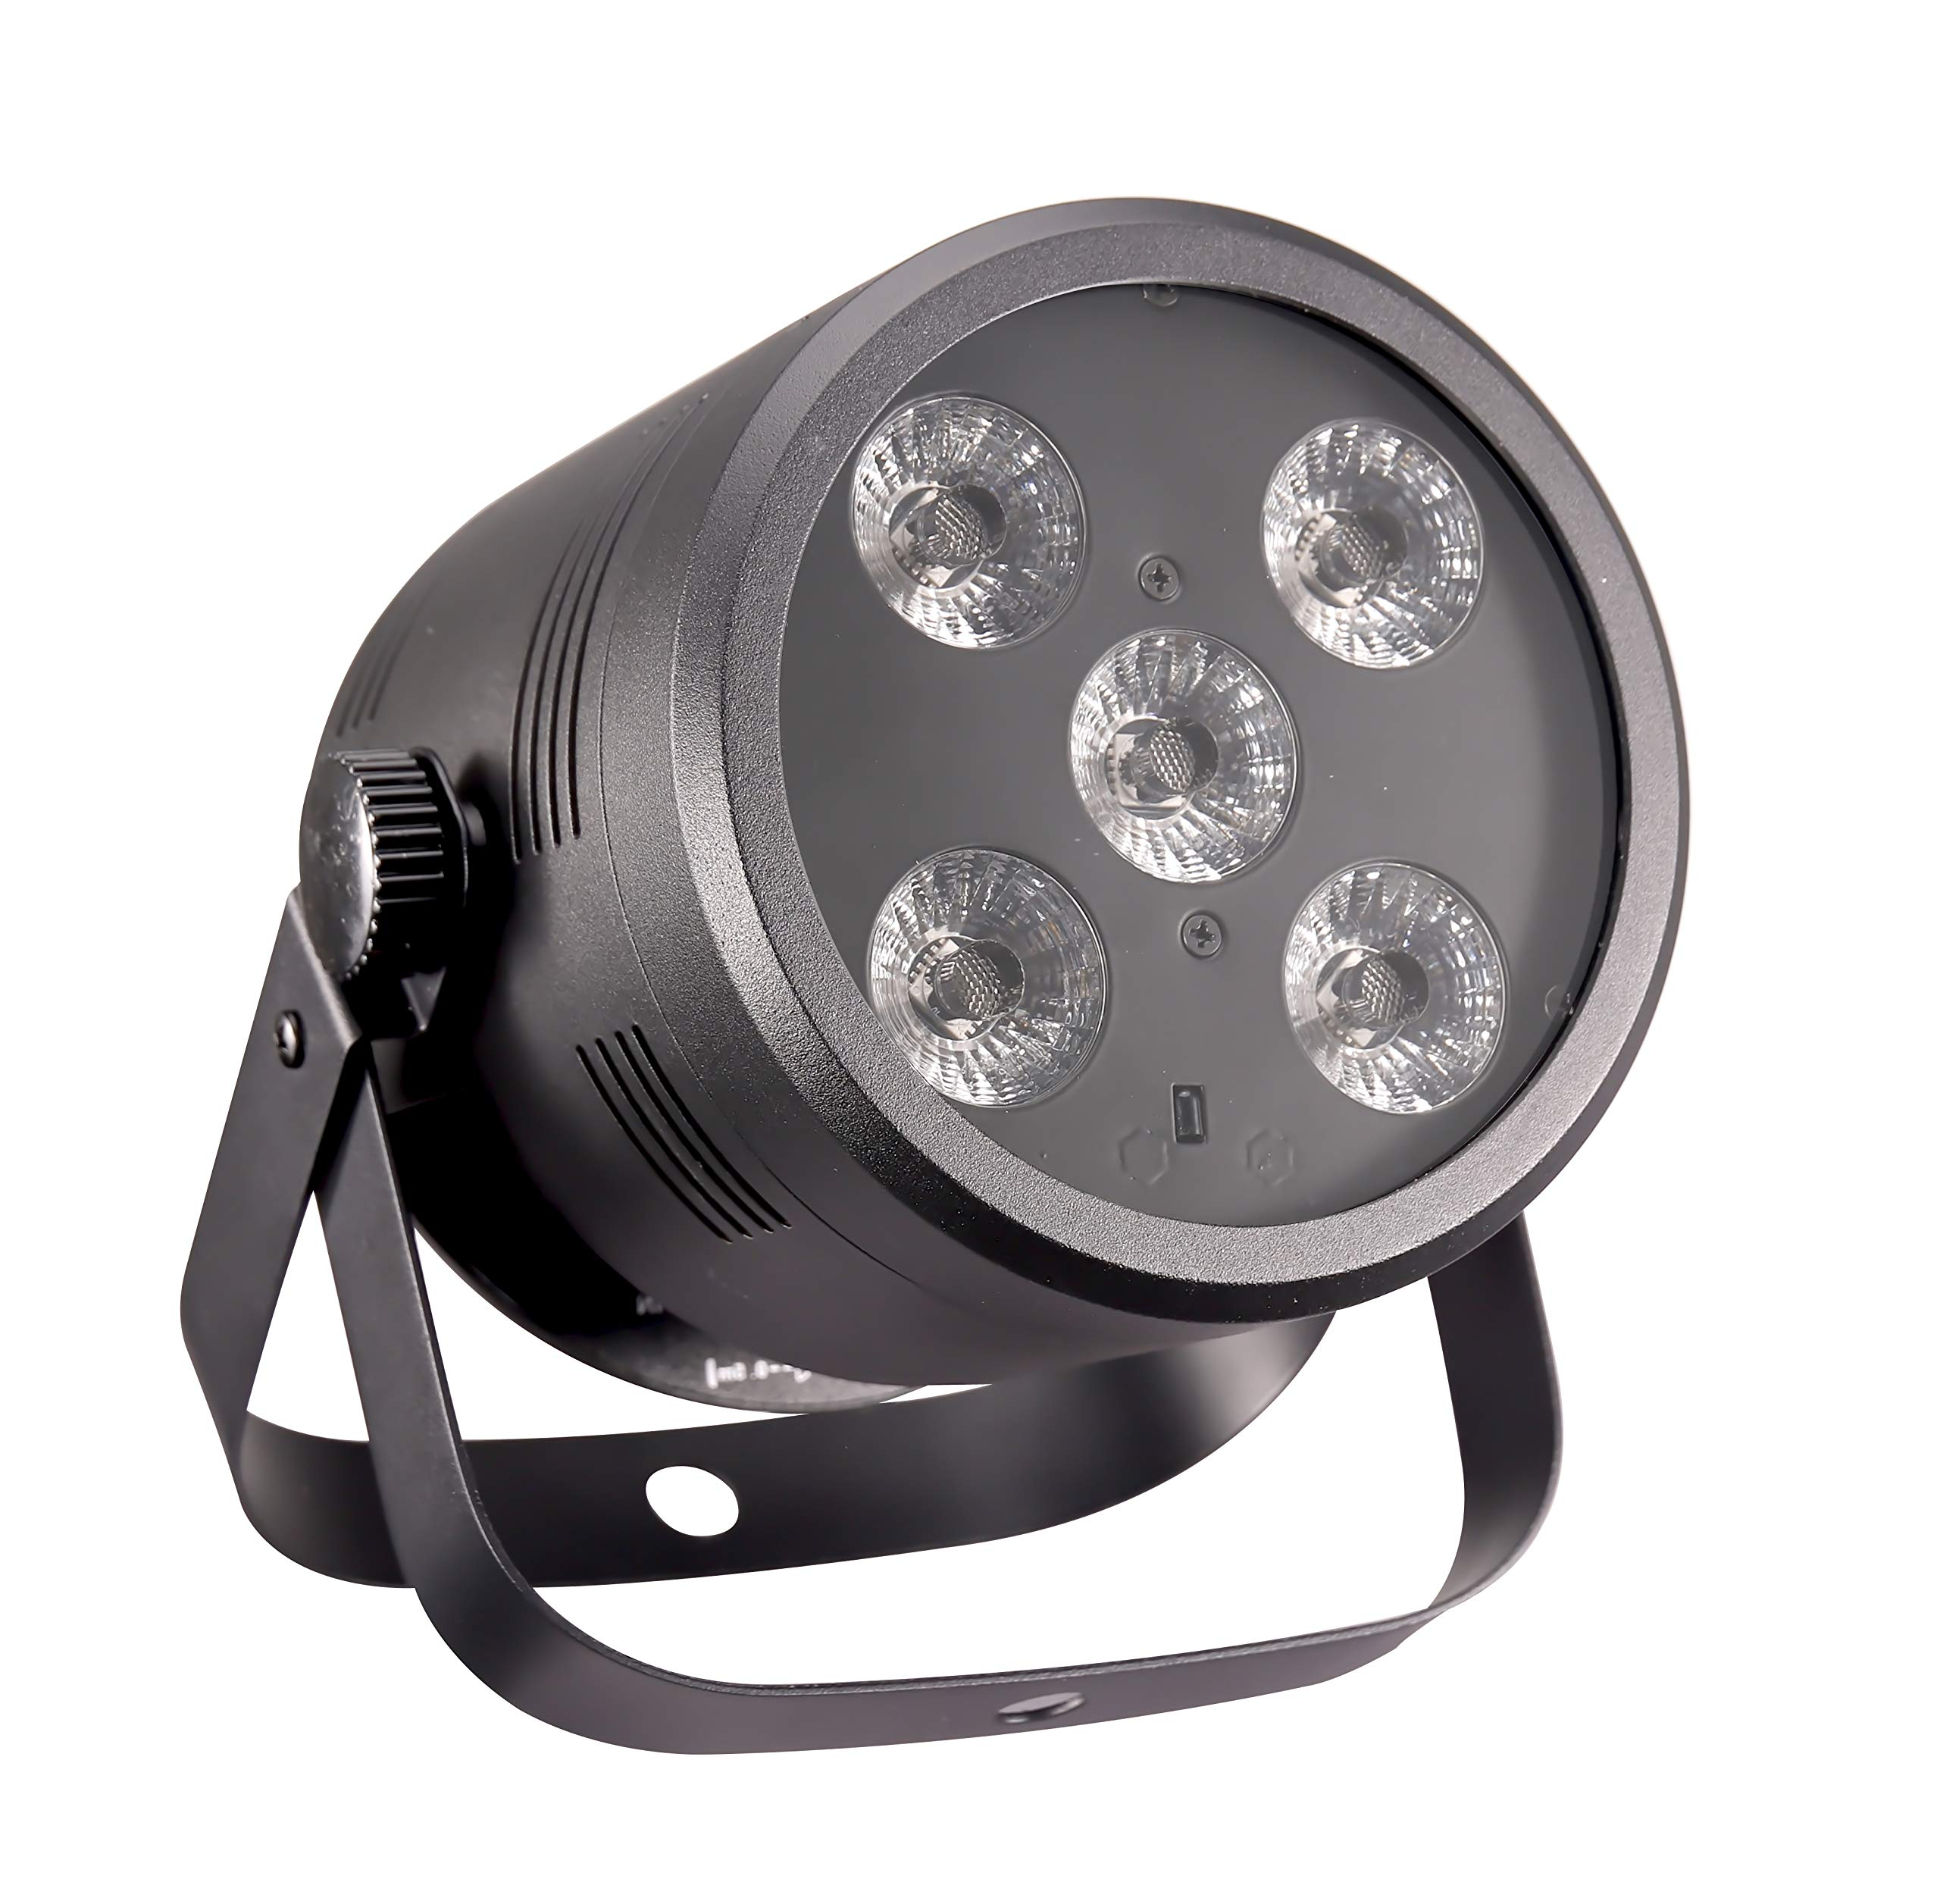 Aspiring Led Moving Head Lighting Fixture For Parties And Events Engagement & Wedding